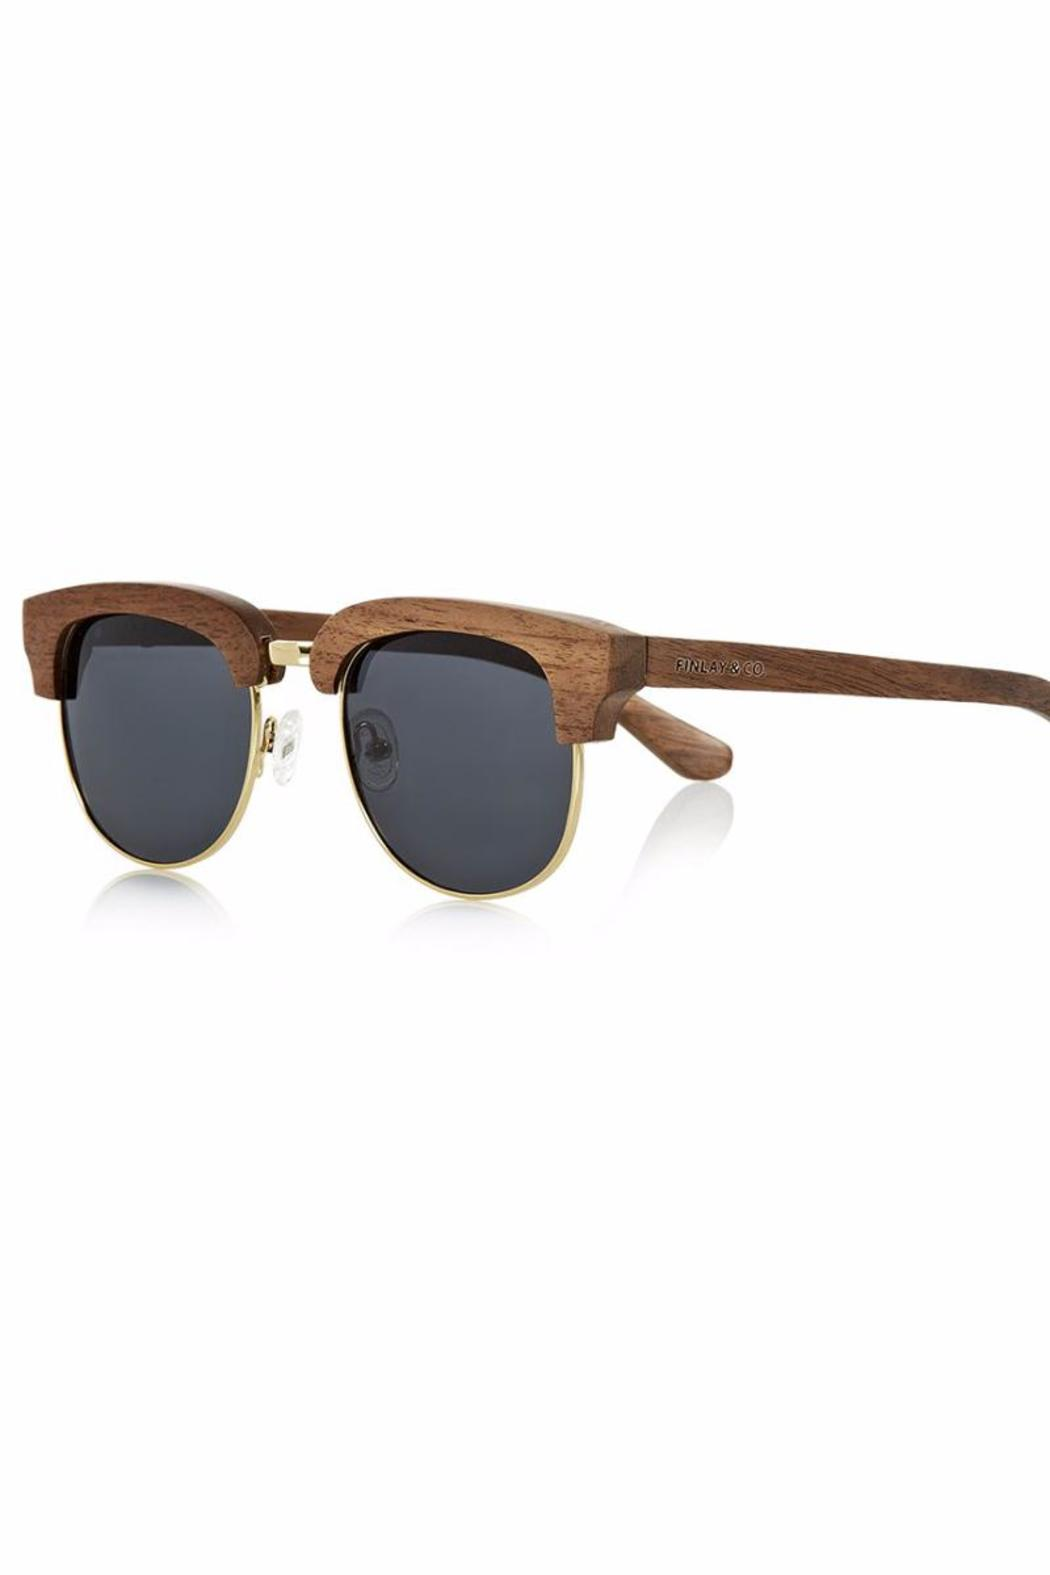 Finlay & Co. Wooden Sunglasses - Main Image